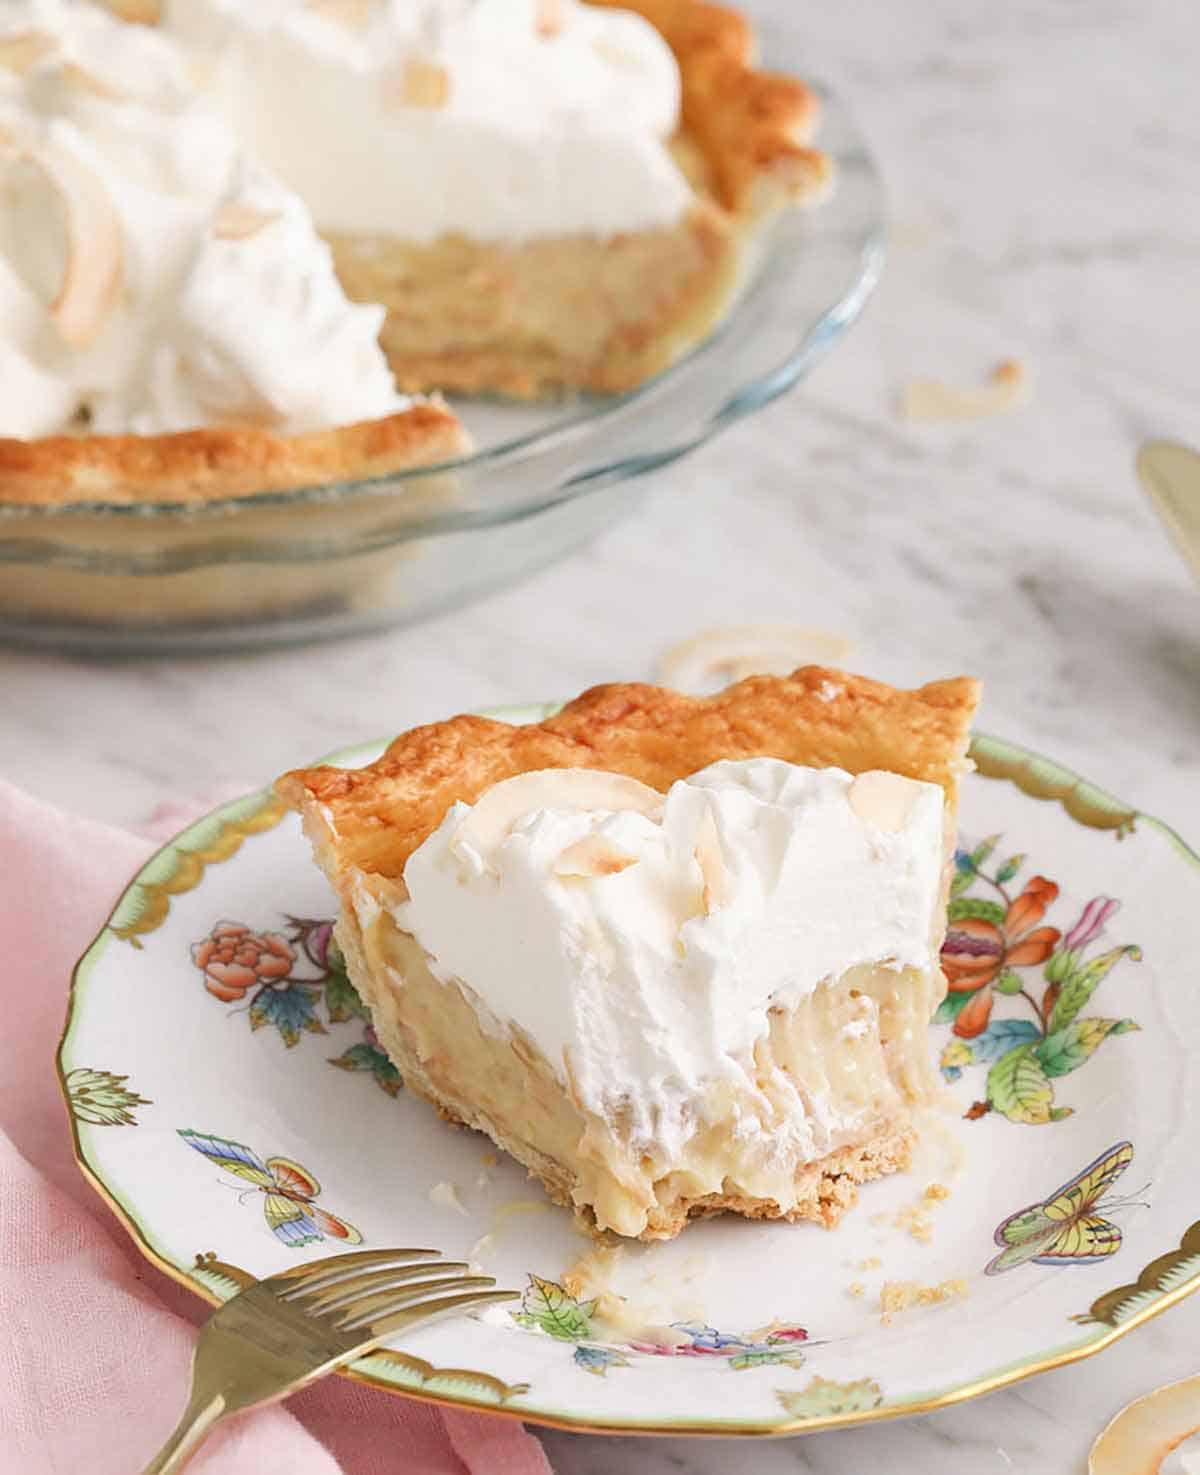 A plate with a slice of coconut cream pie with a bite taken out.